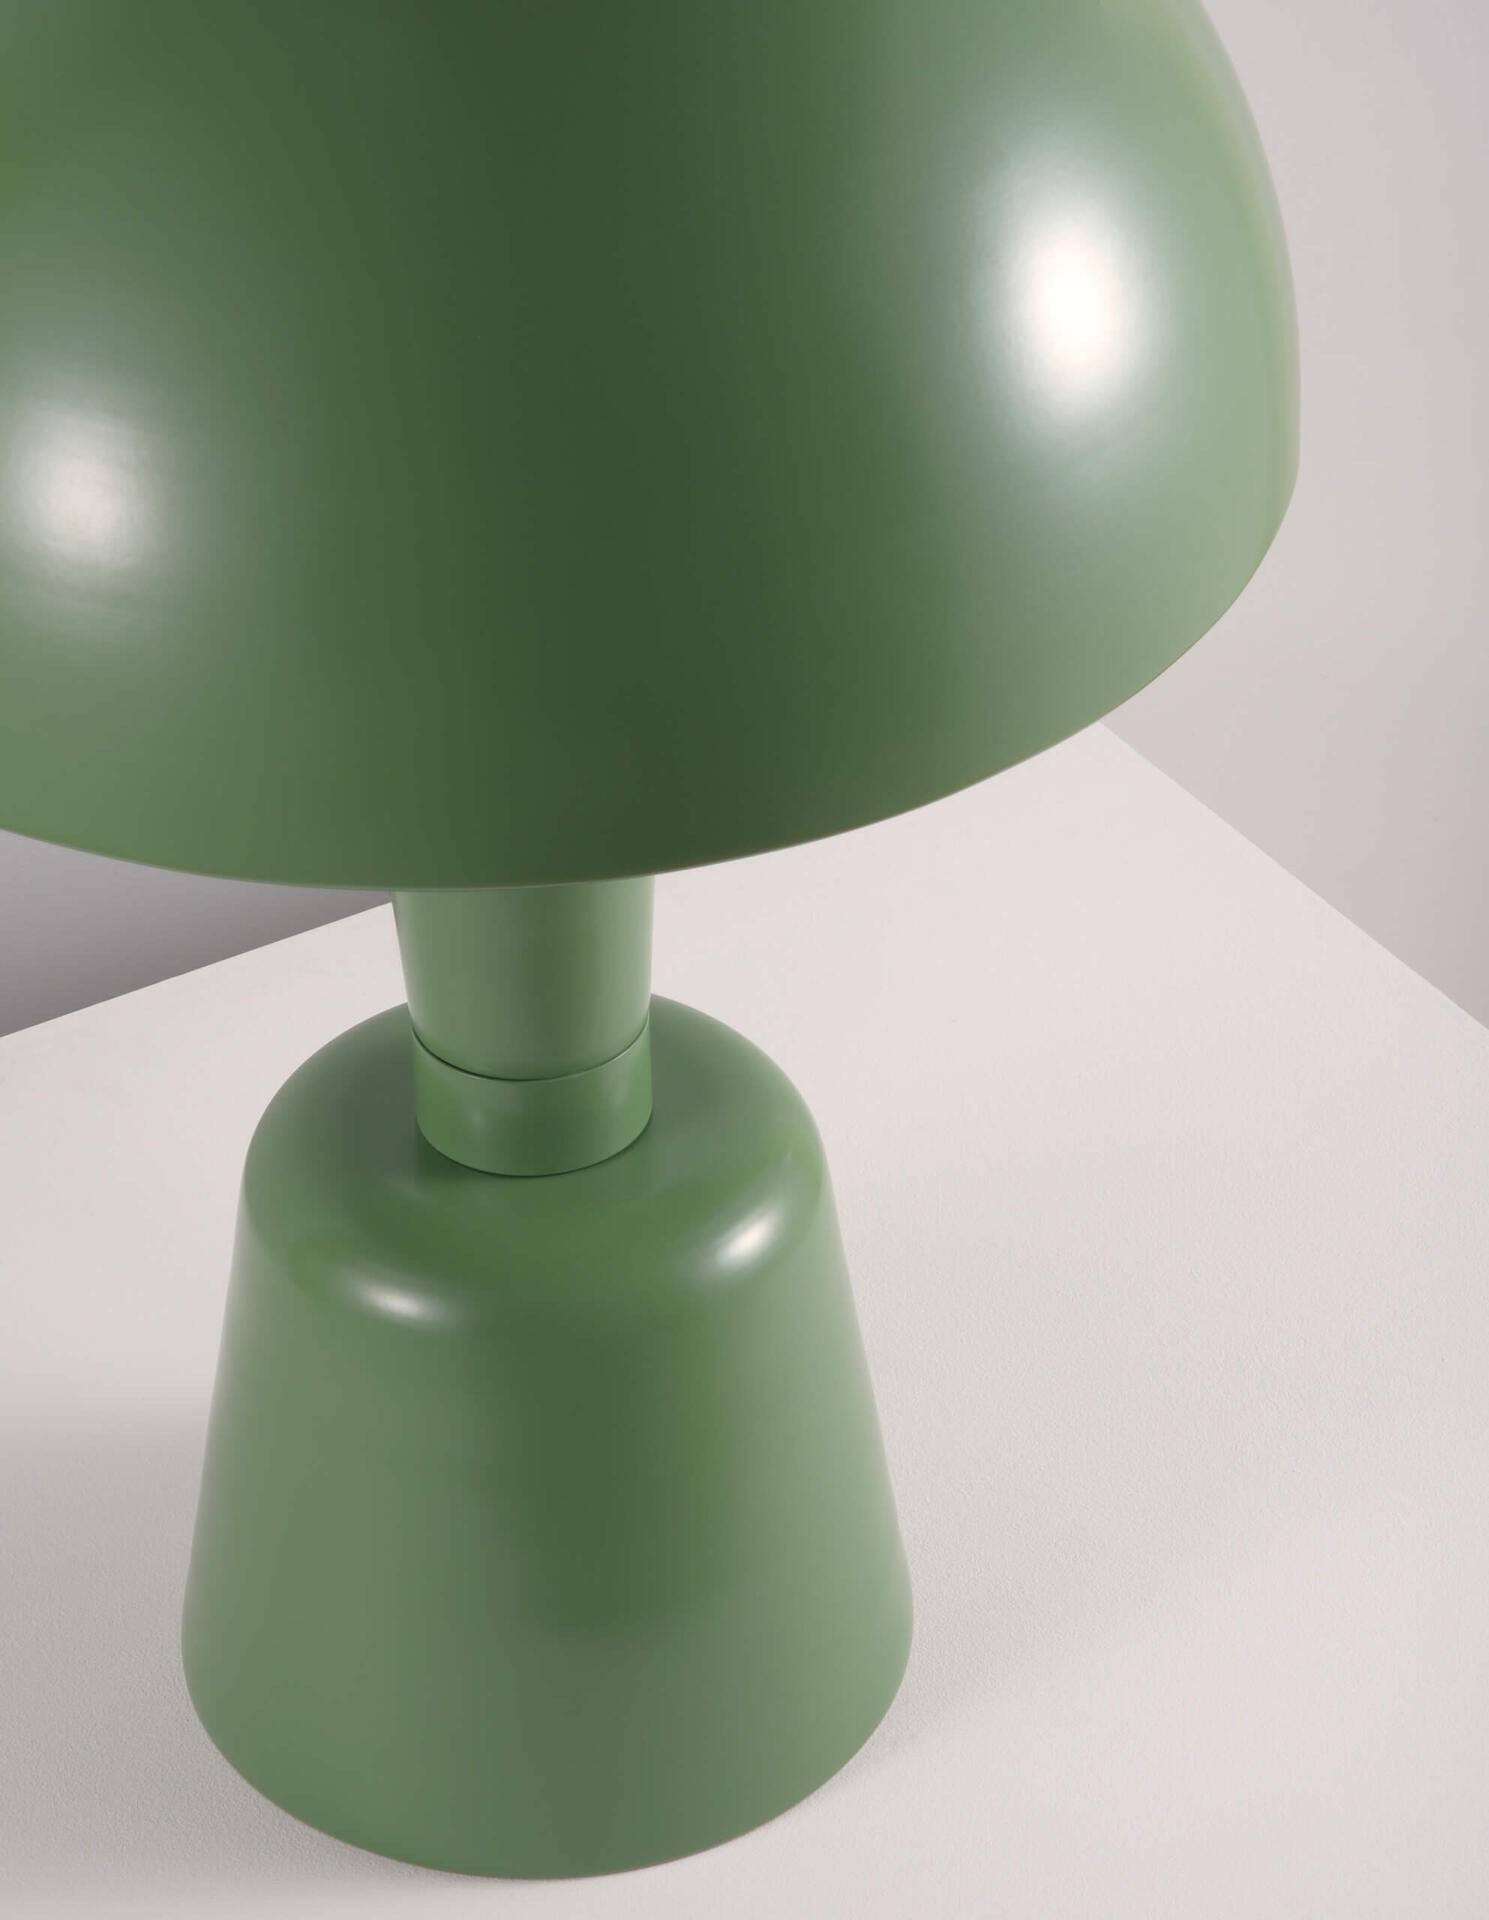 large Powder Coated Cep, a mid-century lamp by Collier Webb